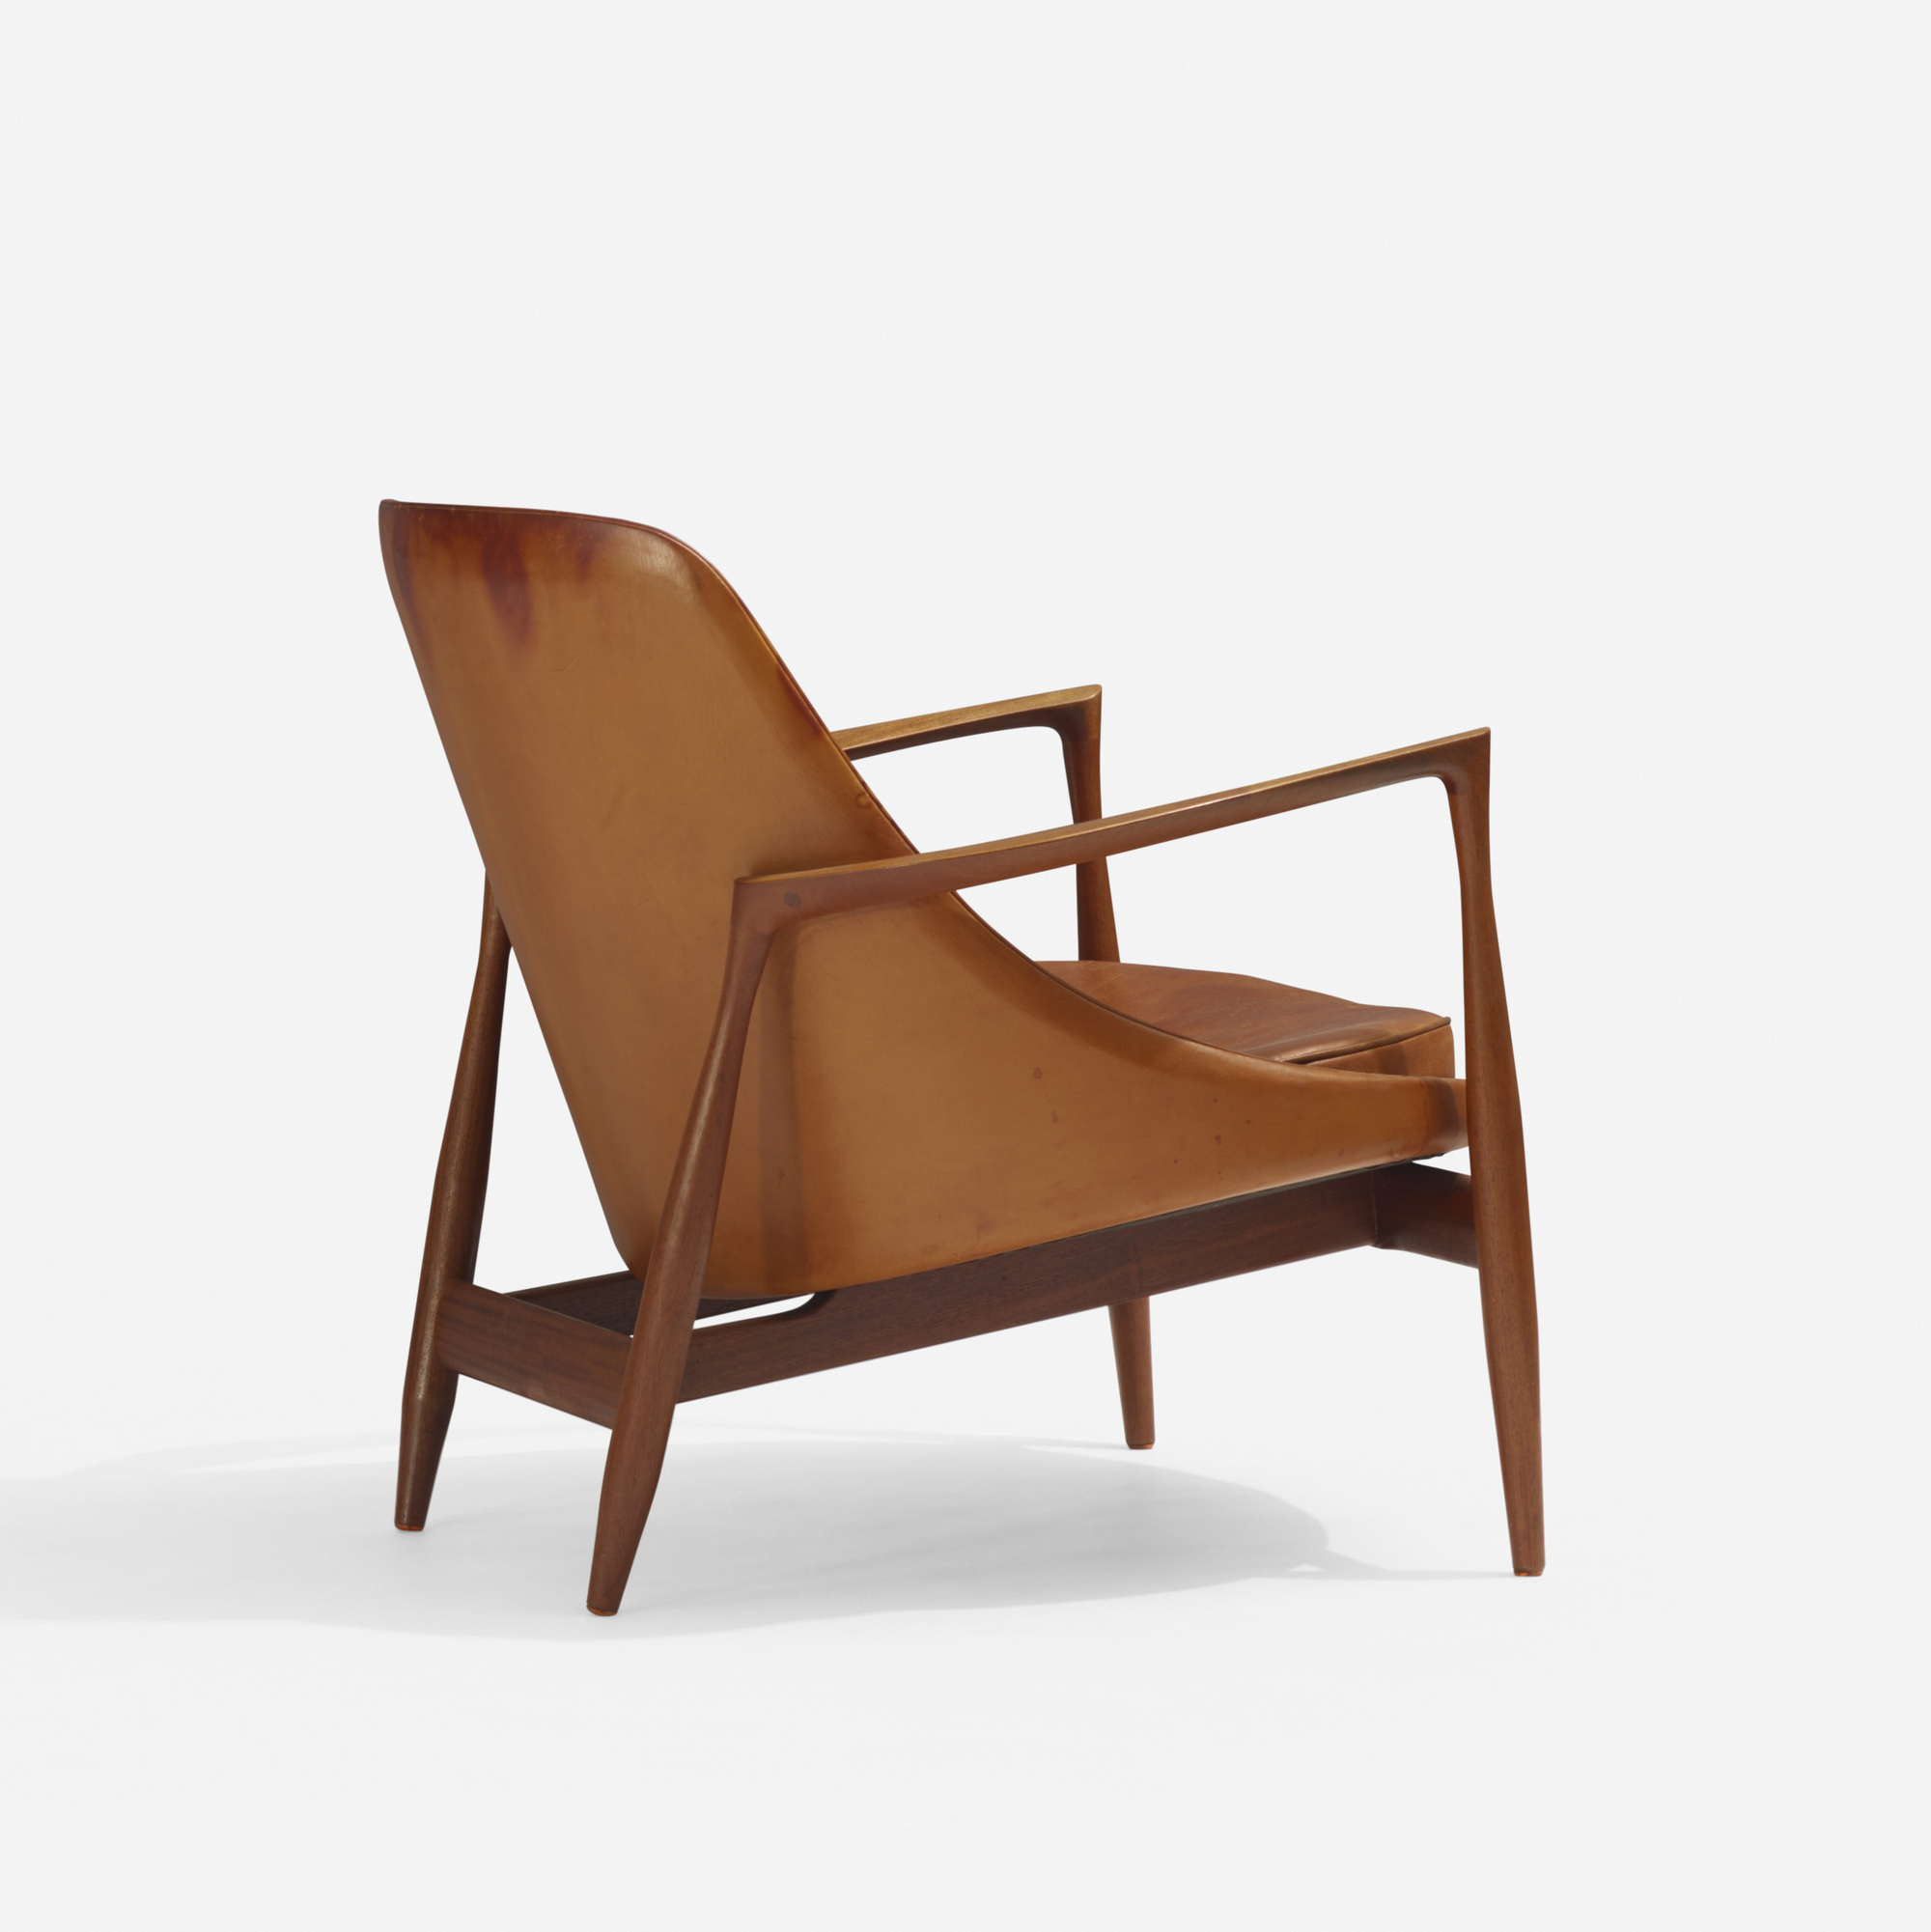 283: Ib Kofod-Larsen / Elizabeth chair (2 of 3)